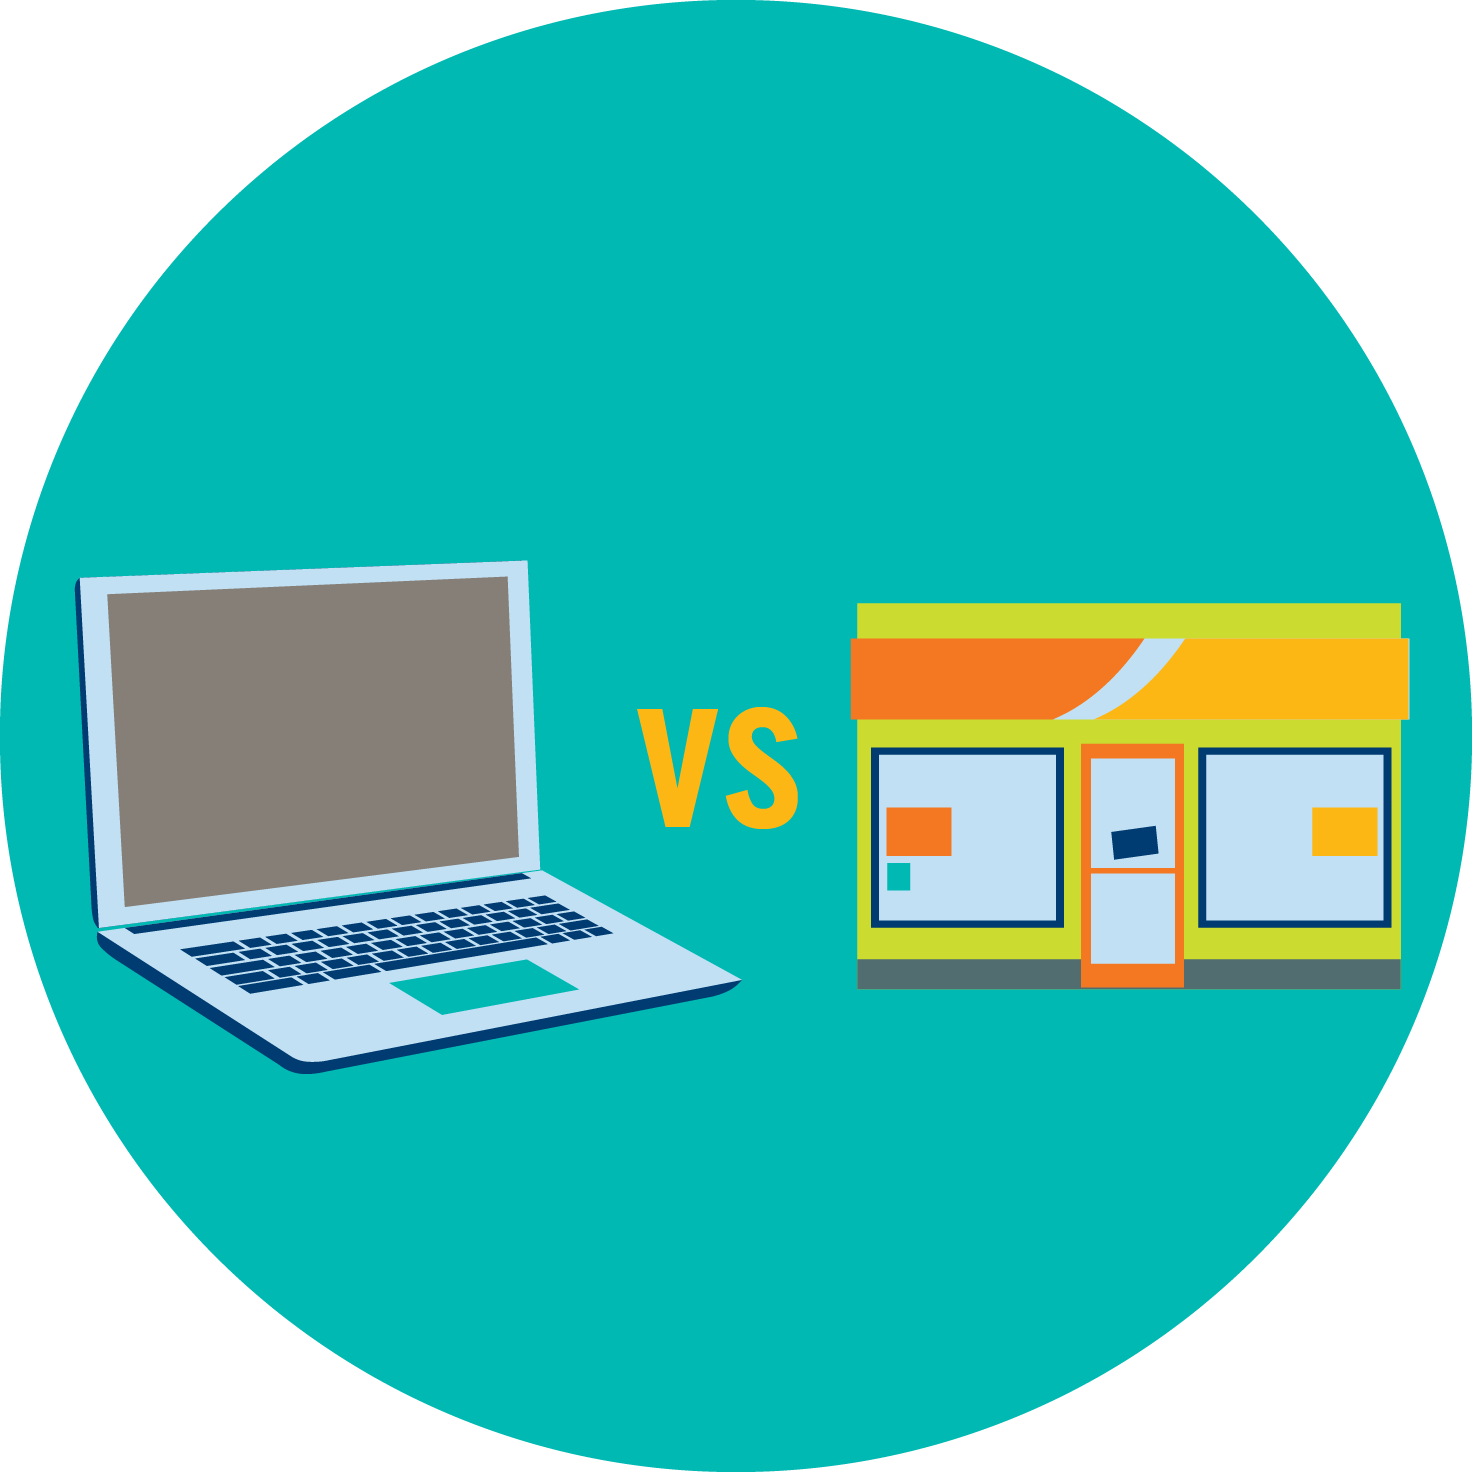 A laptop is shown versus a store, signifying a comparison between online and retail sports betting.